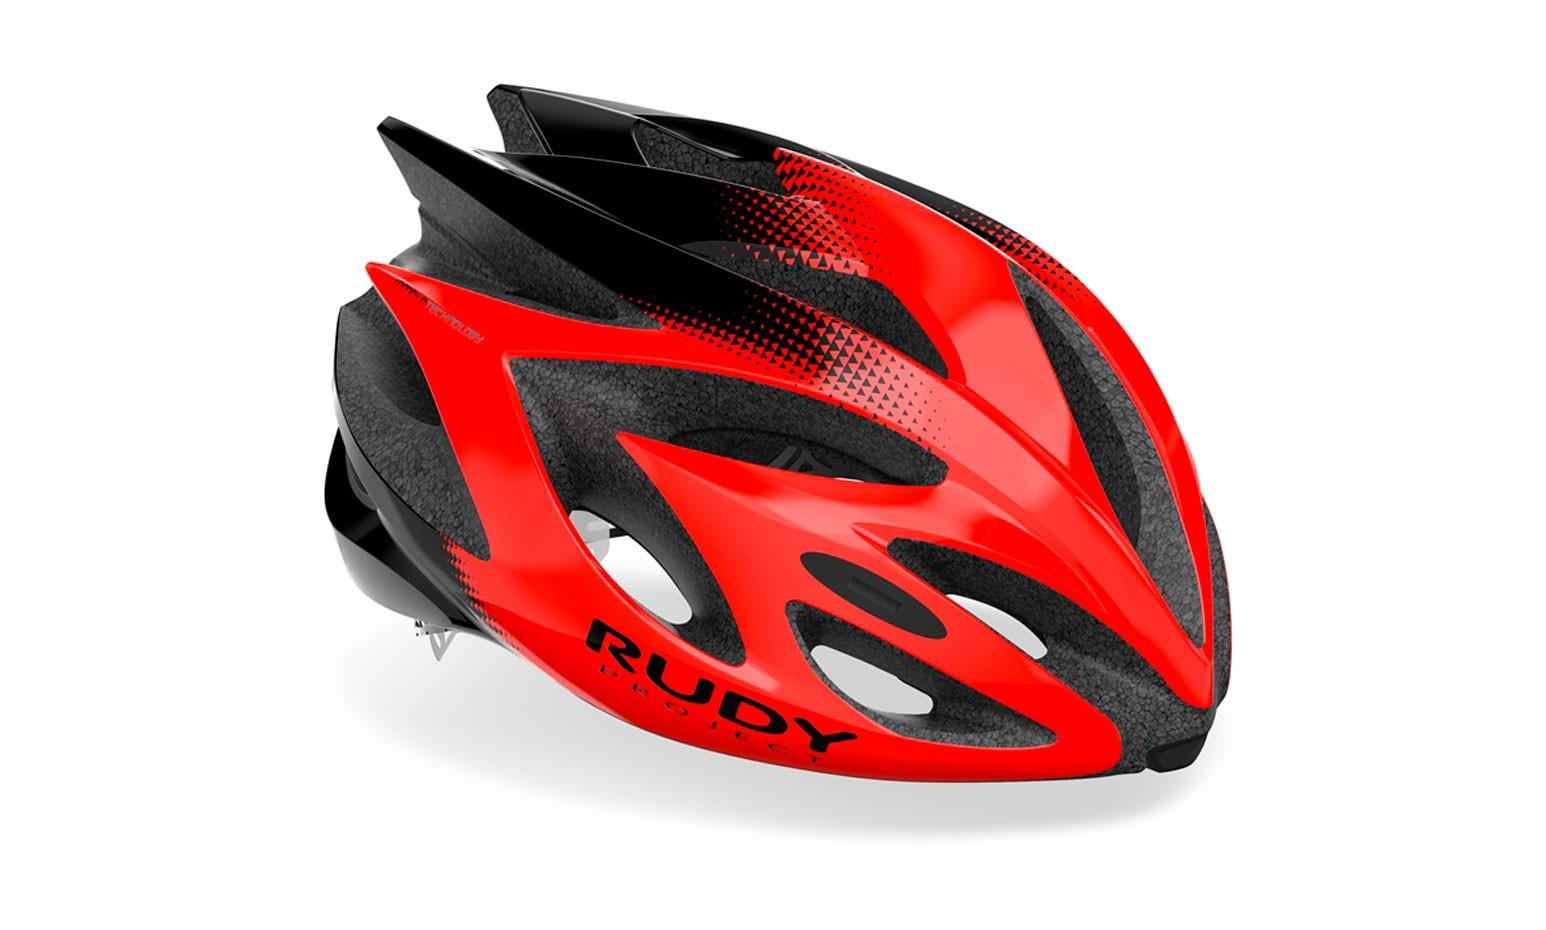 Capacete Rudy Project Modelo Rush Red Black Shiny Tam (l)